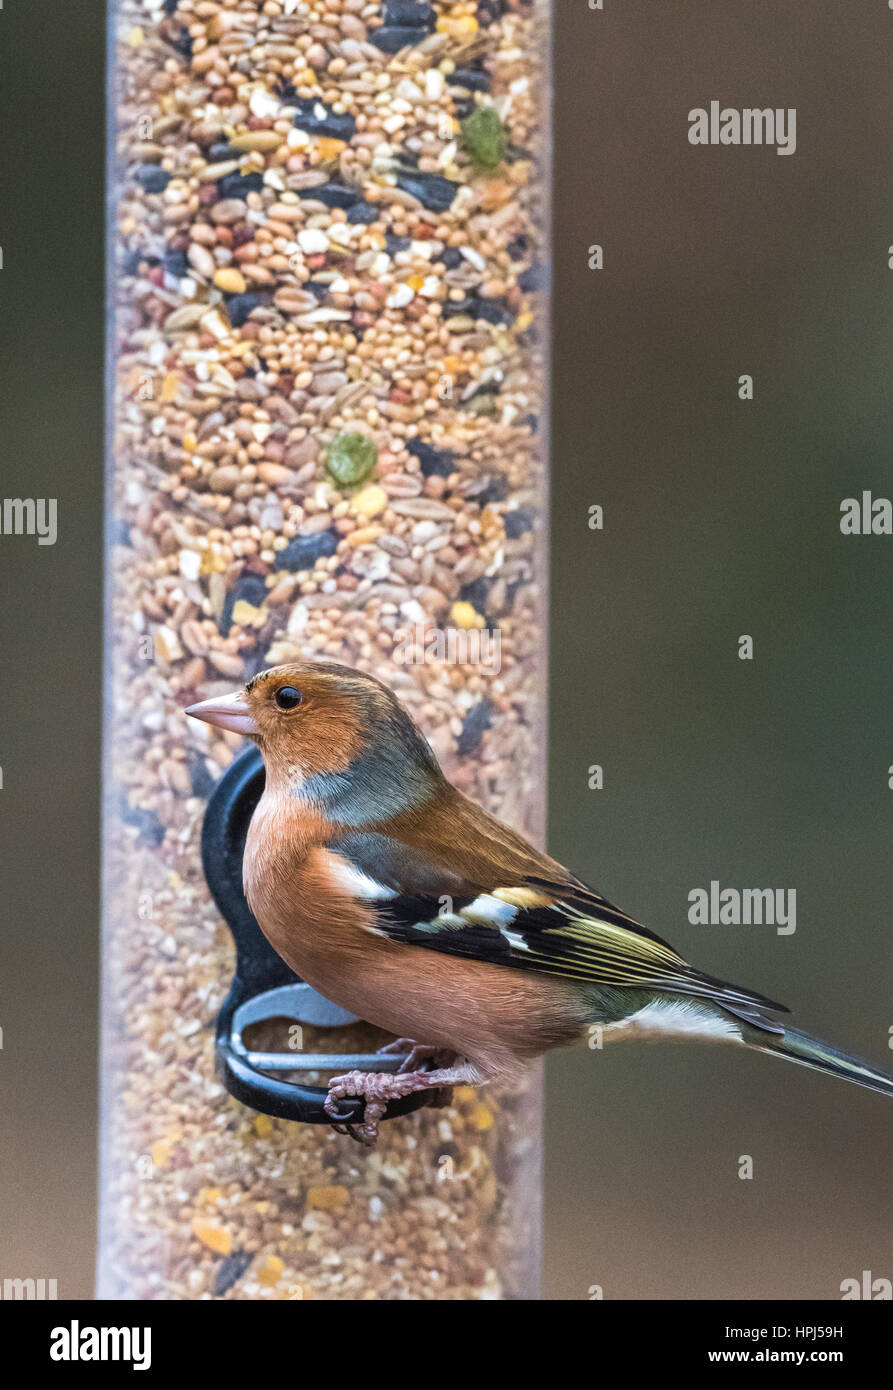 Adult Male Chaffinch searched on a bird feeder - Stock Image